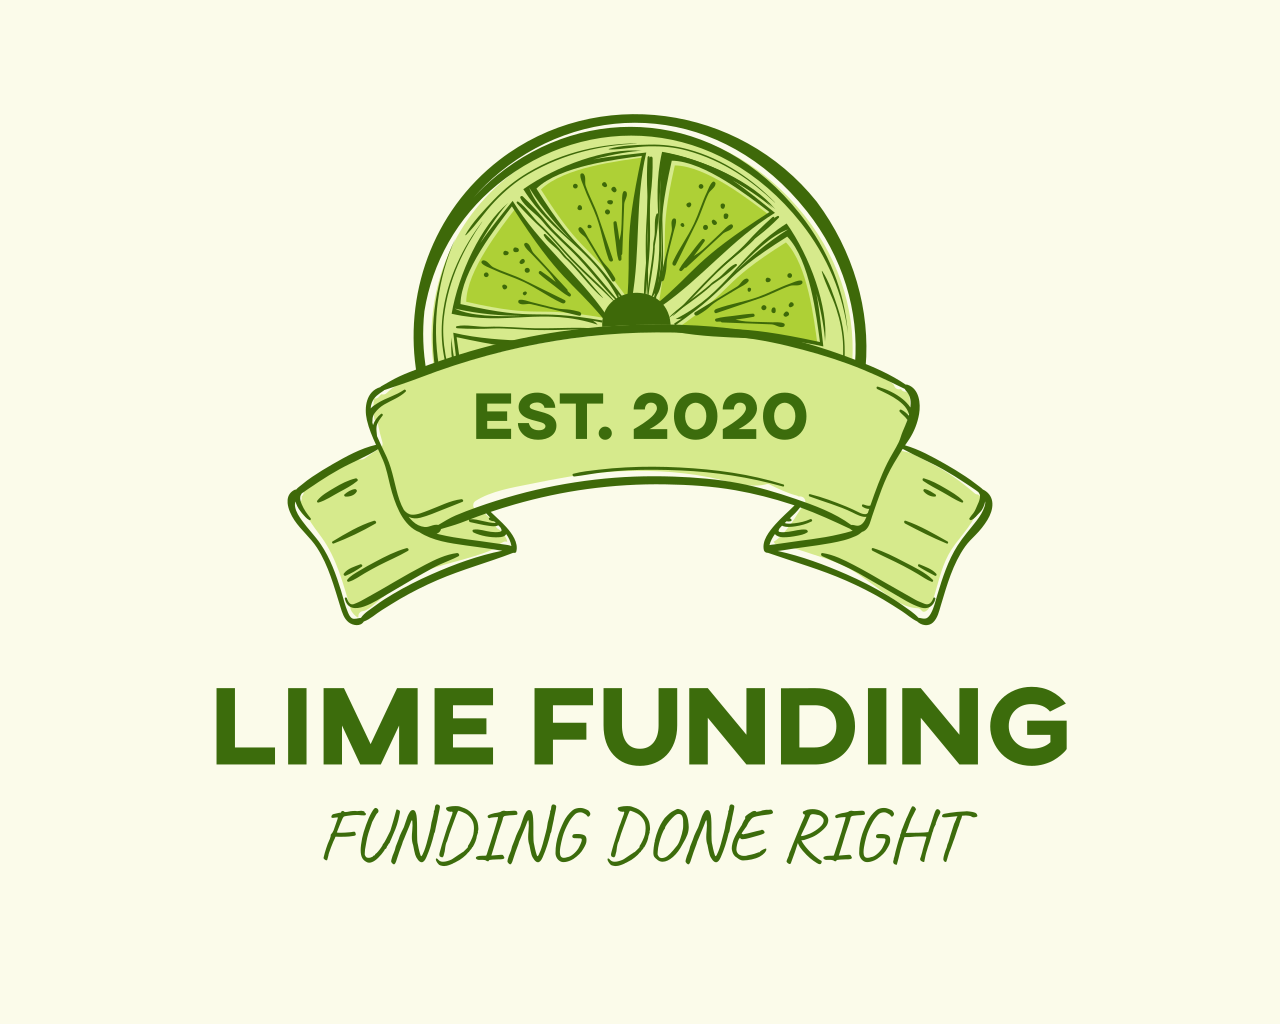 Lime Funding and financial services